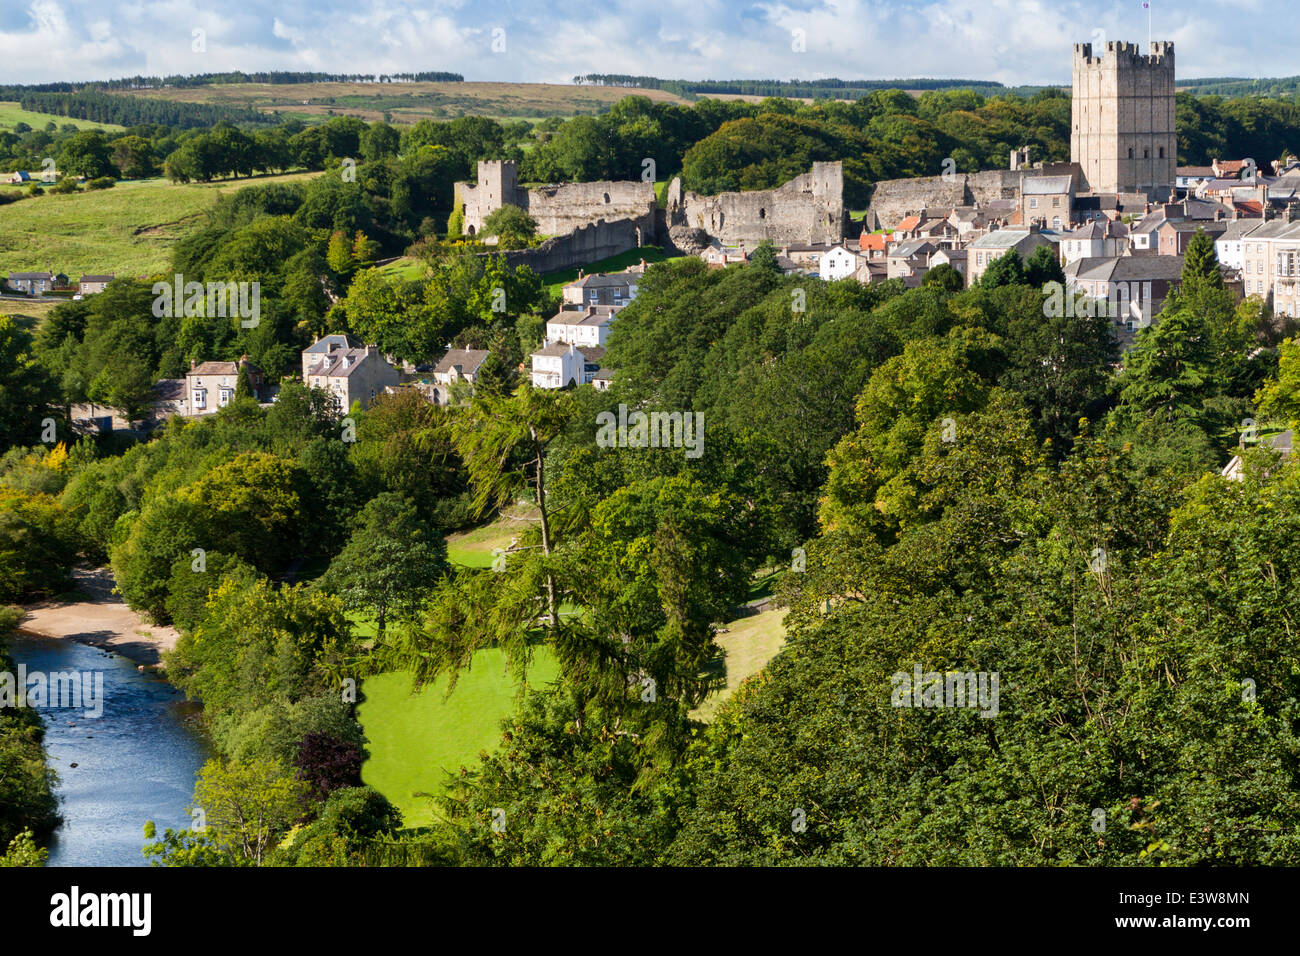 Richmond North Yorkshire  scene showing the Castle, Town, River Swale and The Batts Stock Photo